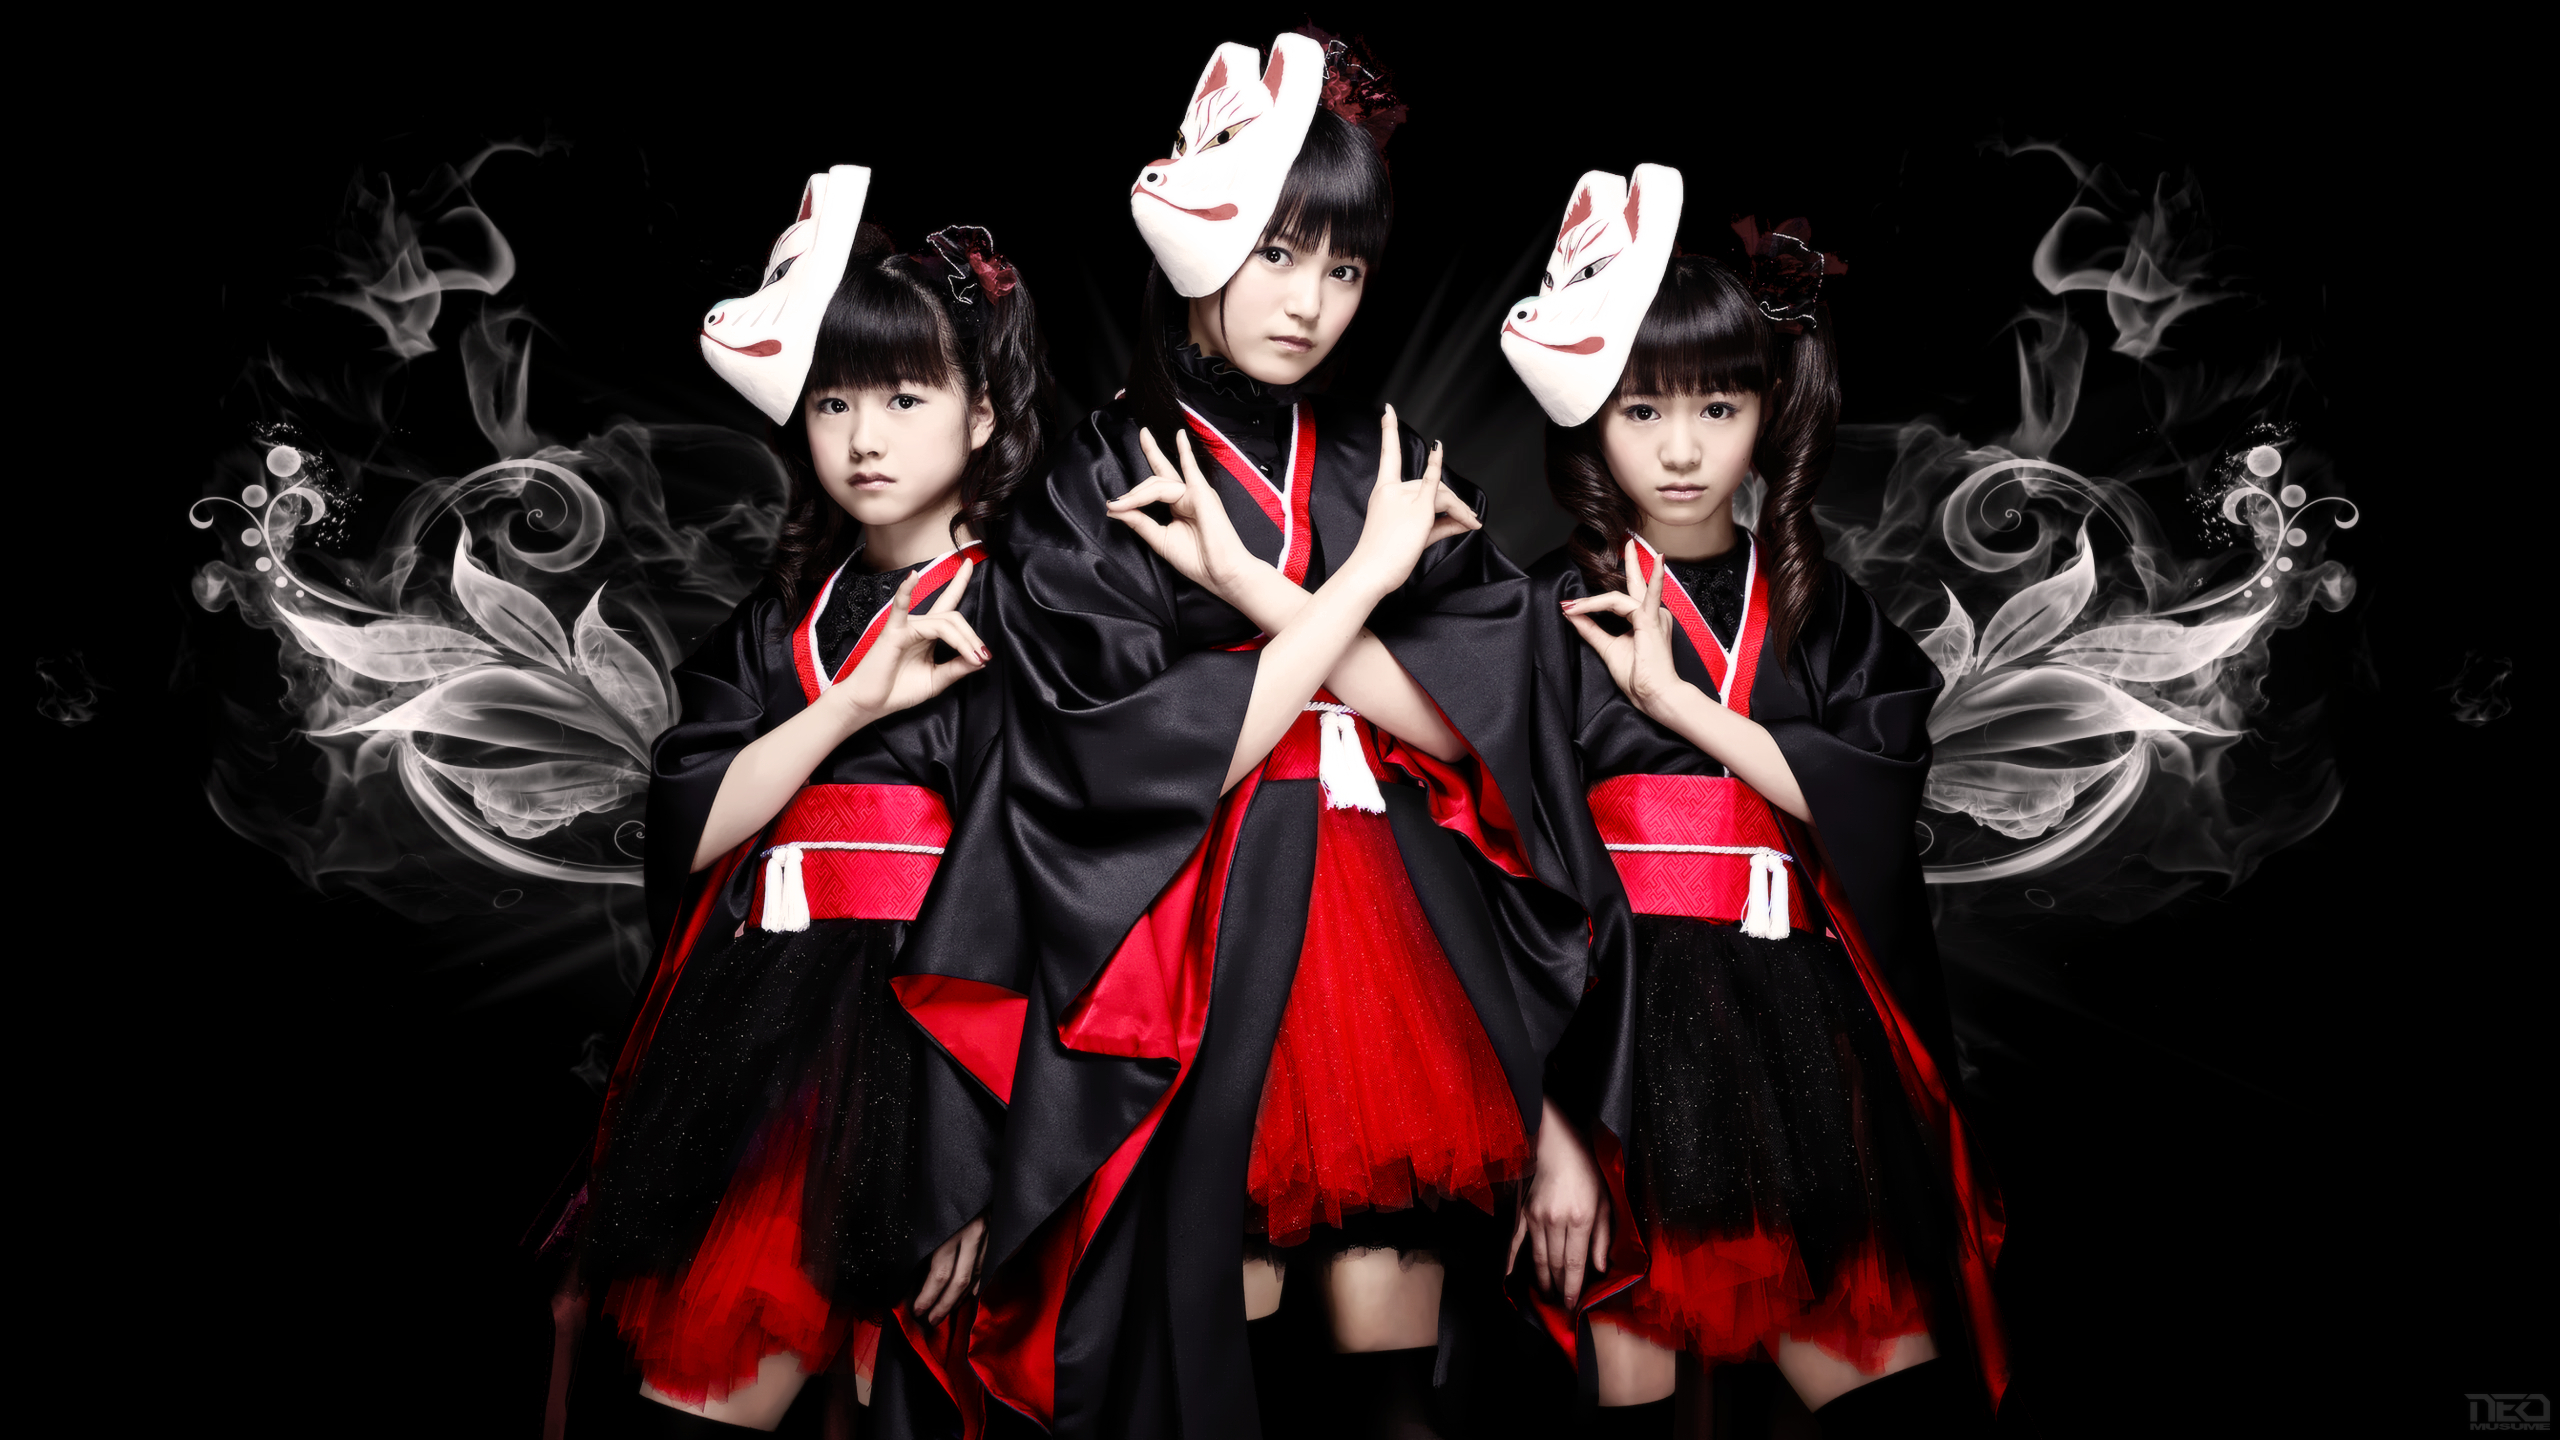 babymetal full hd wallpaper and background image